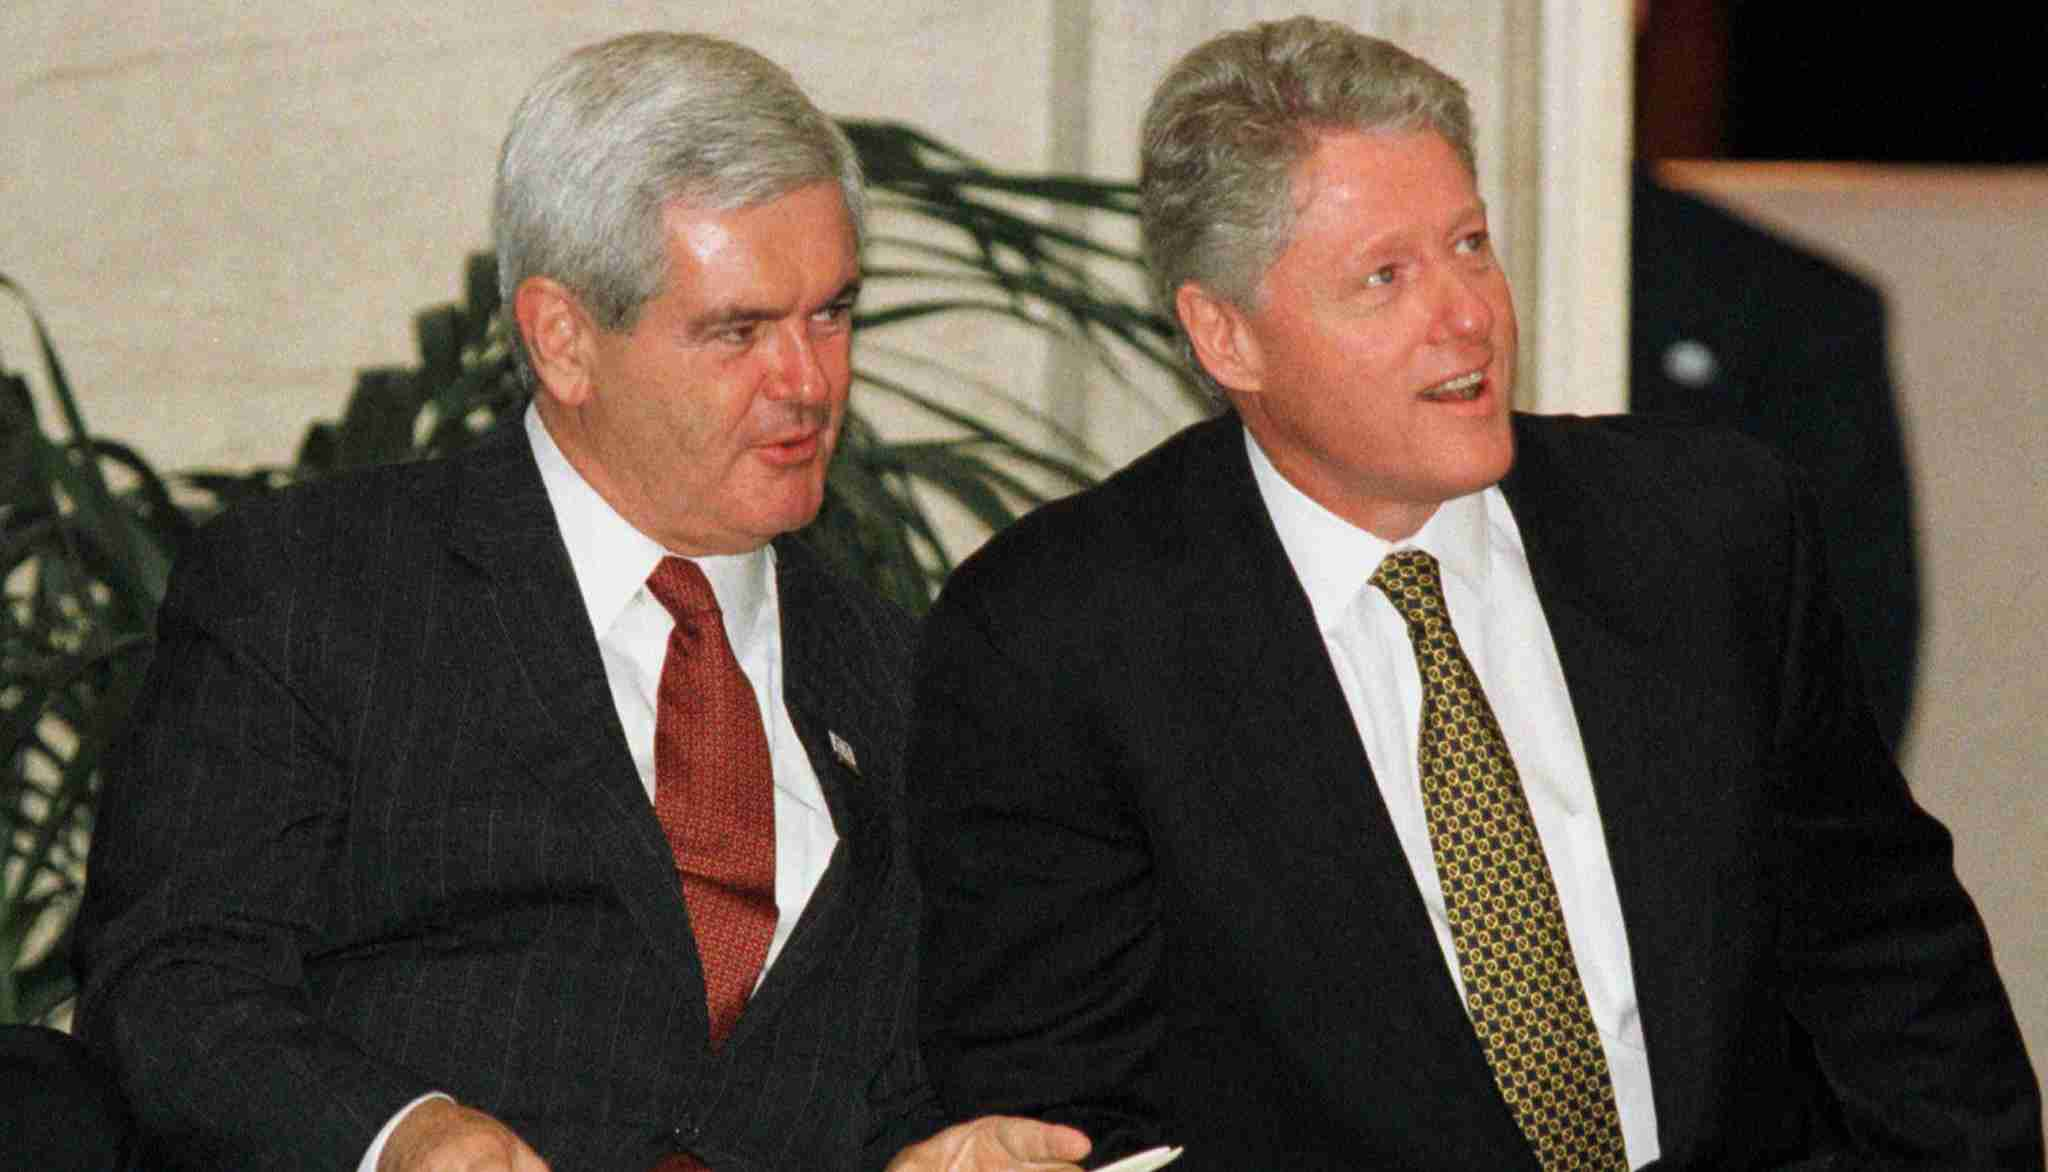 U.S. House of Representatives Speaker Newt Gingrich (L) and President Bill Clinton sit during ceremonies at the U.S. Capitol [honouring South African President Nelson Mandela] September 23. Gingrich said earlier that it was too early to talk of compromise with the White House and that the impeachment investigation of Clinton should continue. - PBEAHUMGBCS